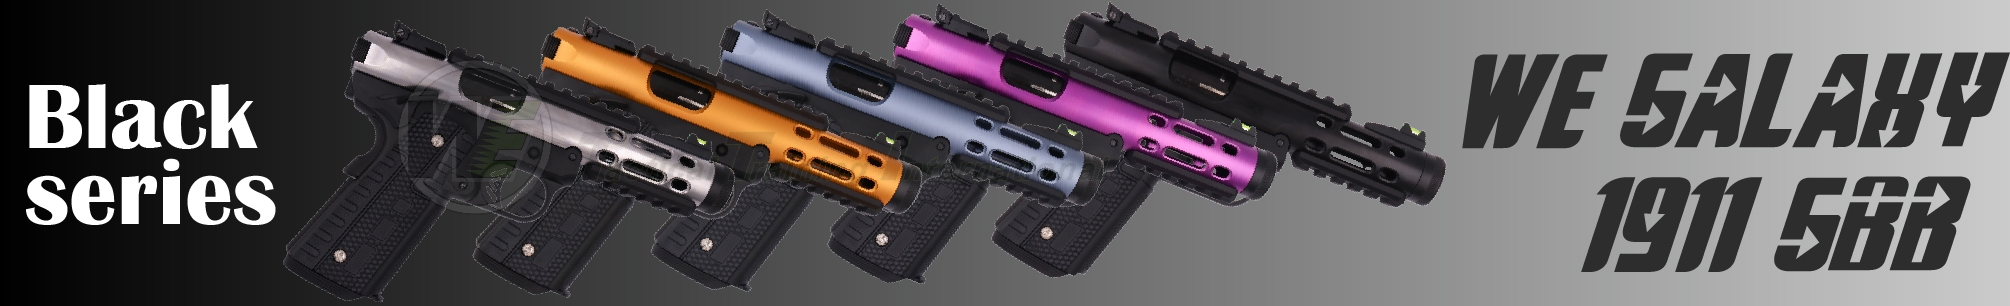 WE_Airsoft_We_Galaxy_G_serie_baner-img